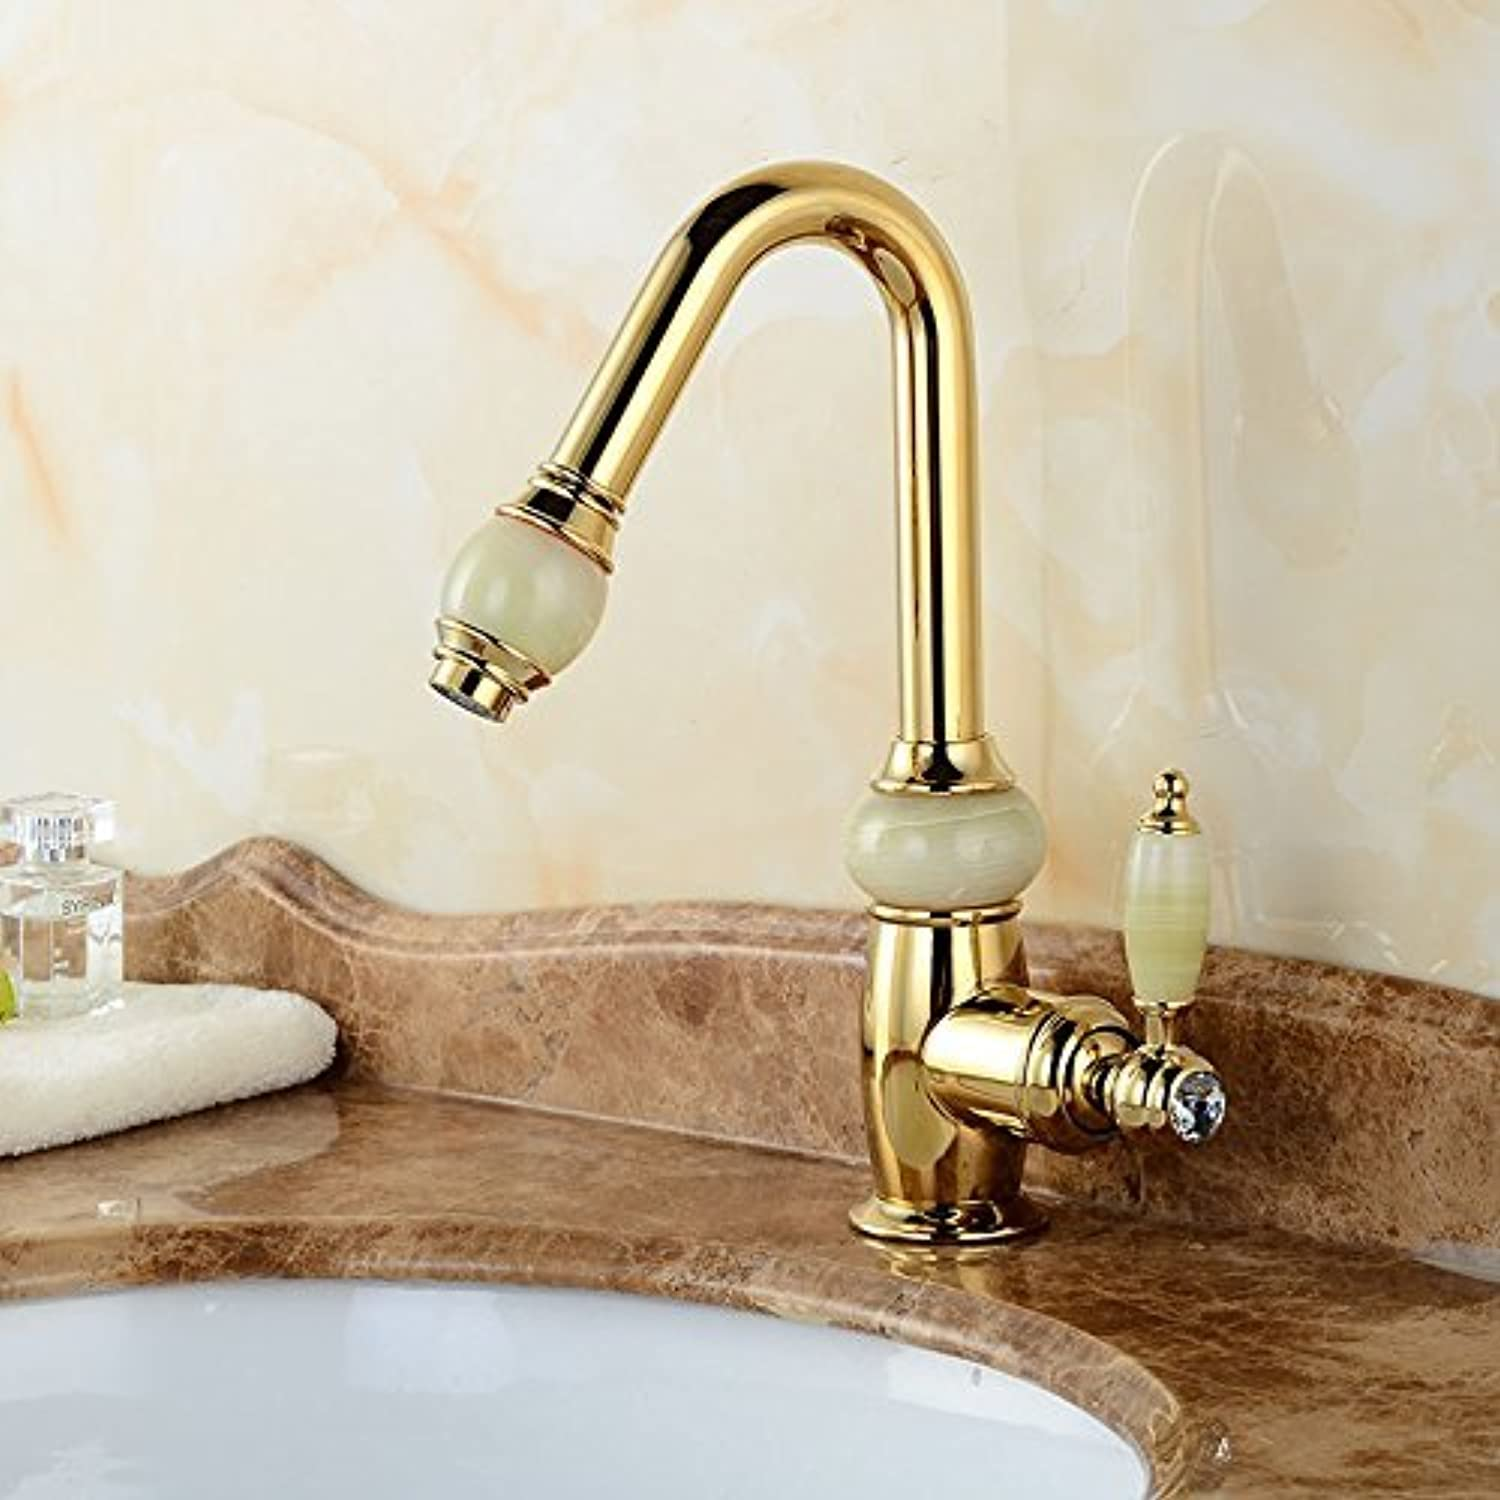 Pull Out The wash Basin taps Crane Copper, gold Sinks Sinks and hot & Cold Shower Mixer Bathroom Faucet a Mounted Bridge, gold